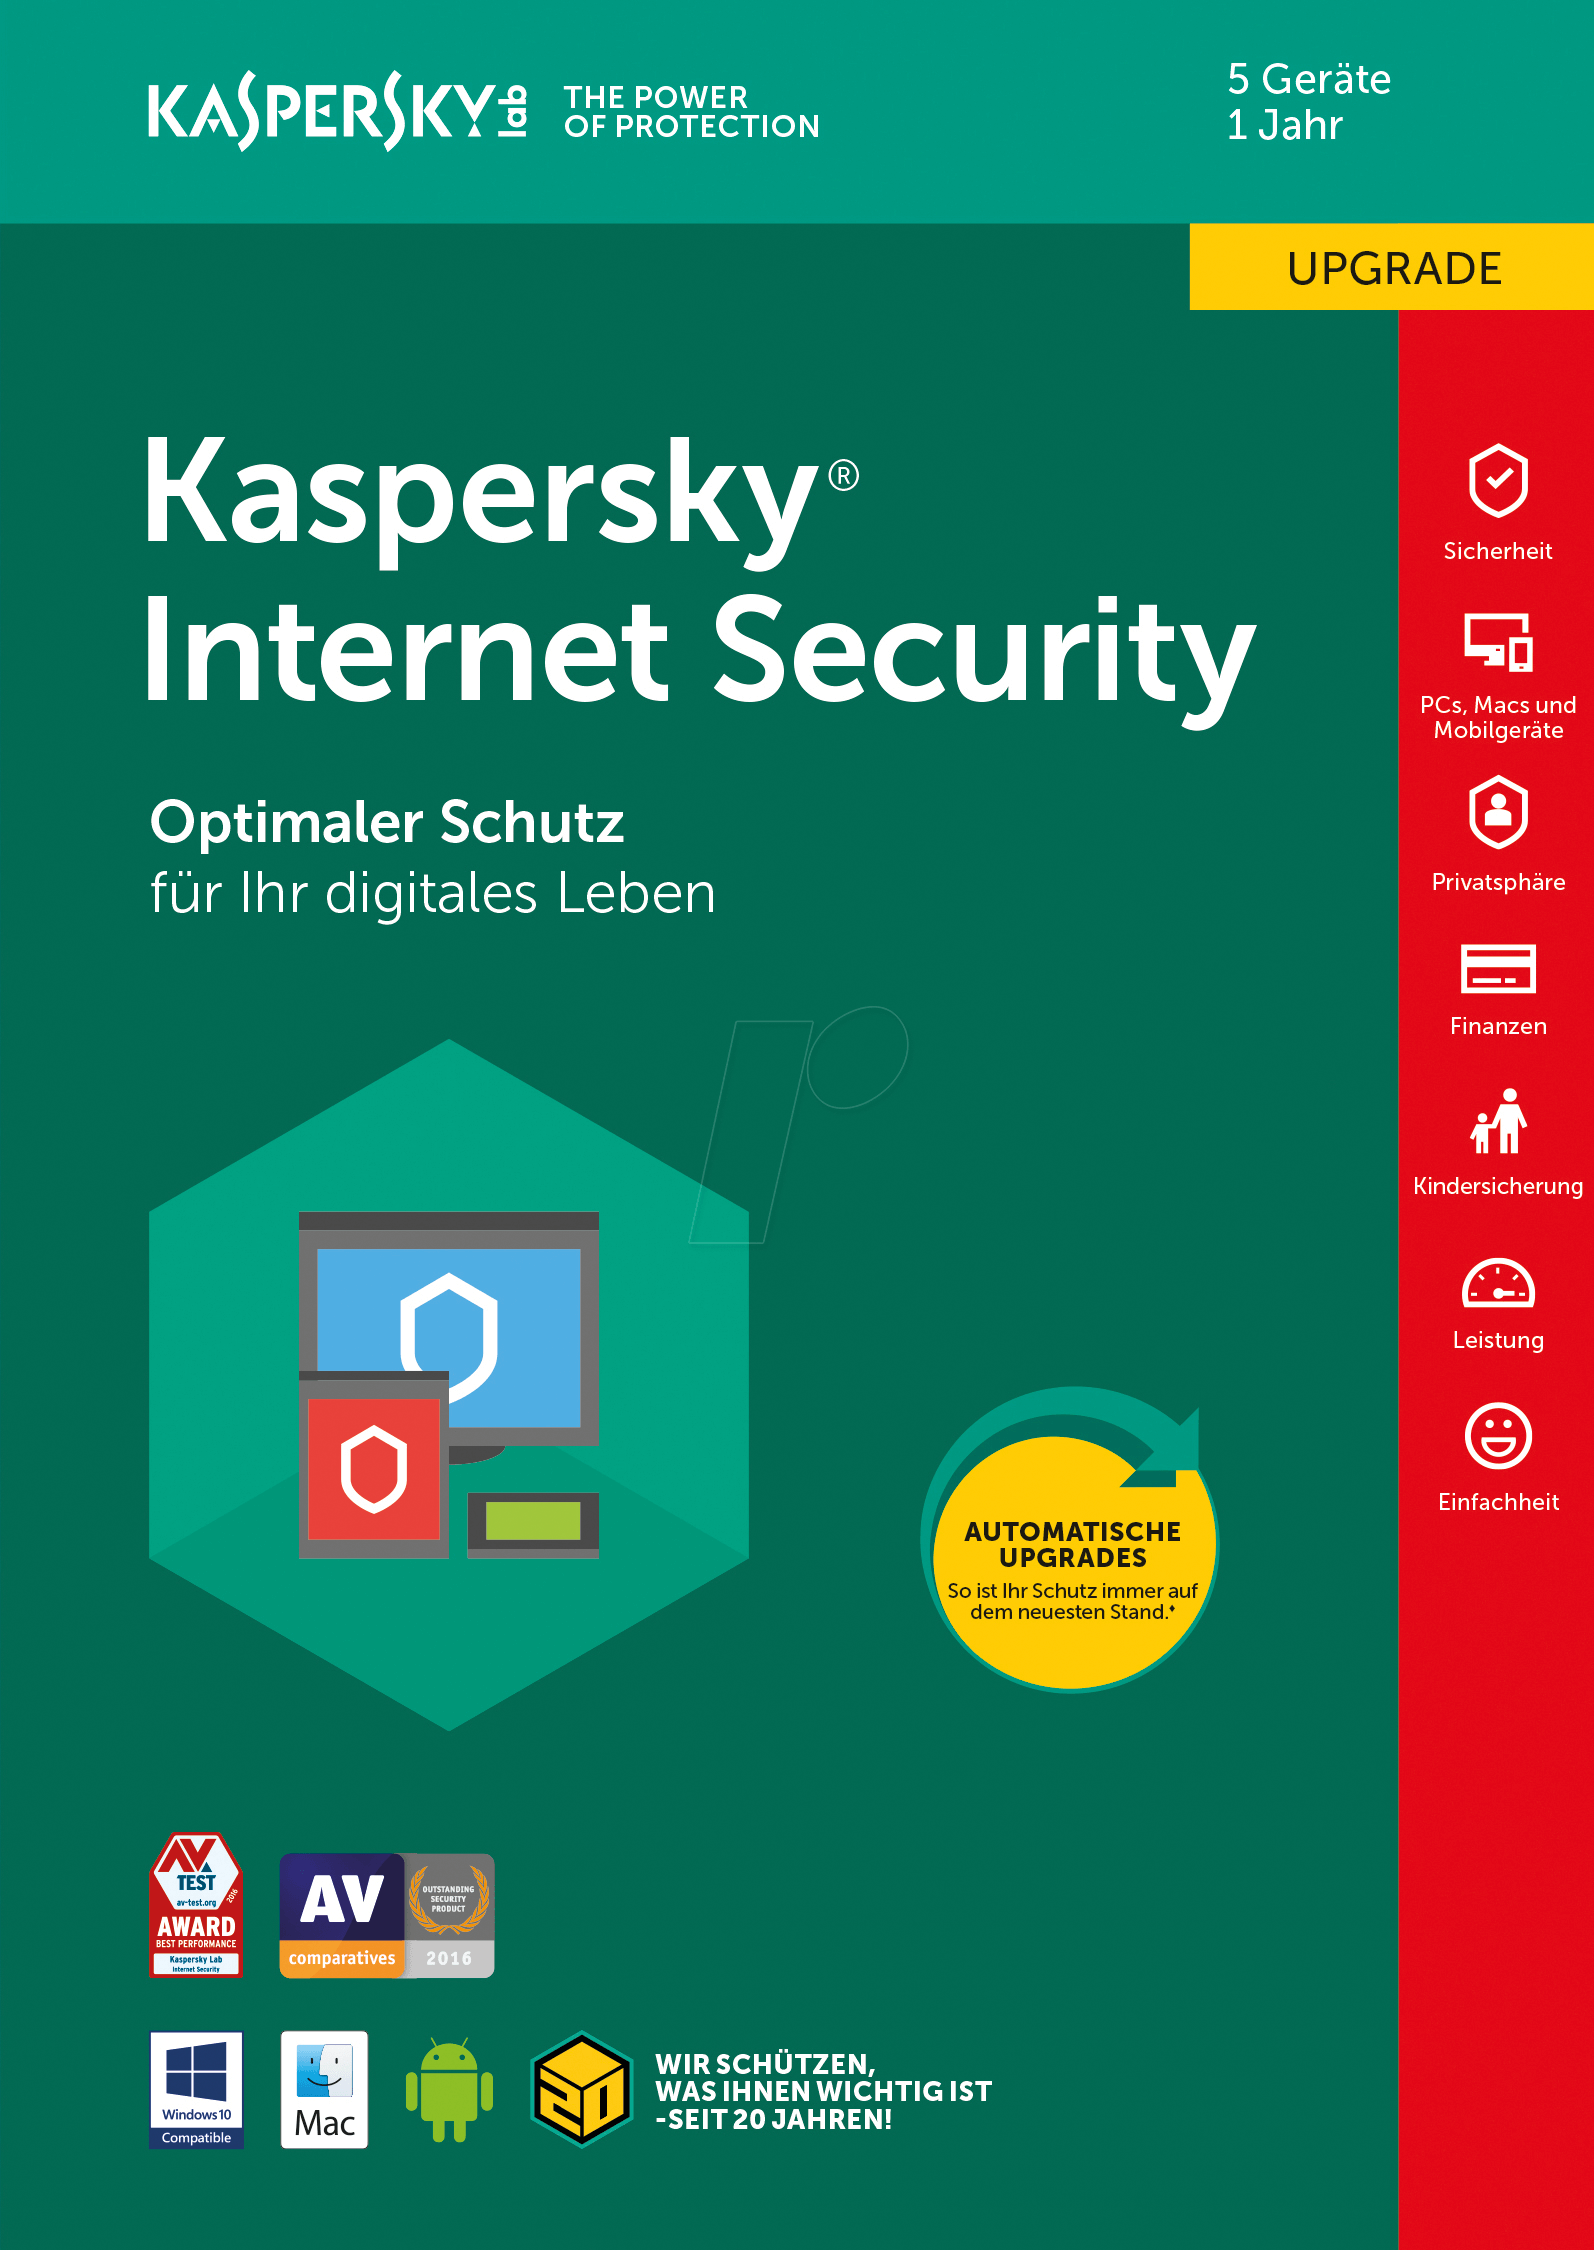 https://cdn-reichelt.de/bilder/web/xxl_ws/G500/KASPERSKY_IS2018_5U_UP_01.png